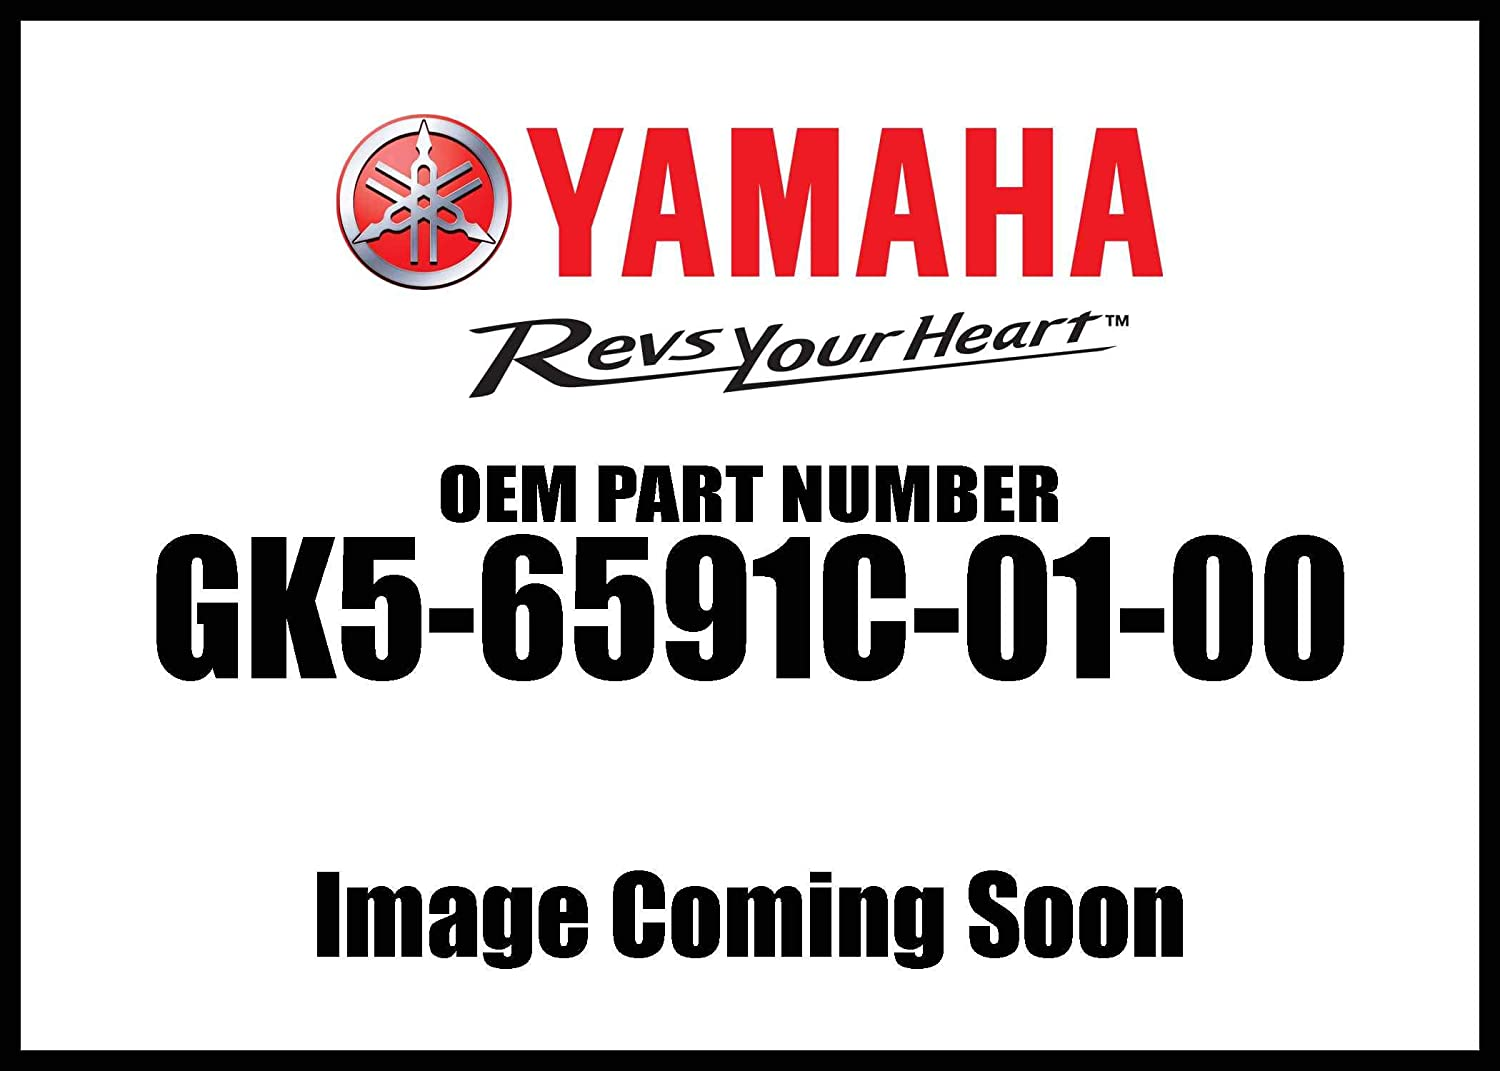 Yamaha GK5-6591C-01-00 Cap, Case; GK56591C0100 Made by Yamaha